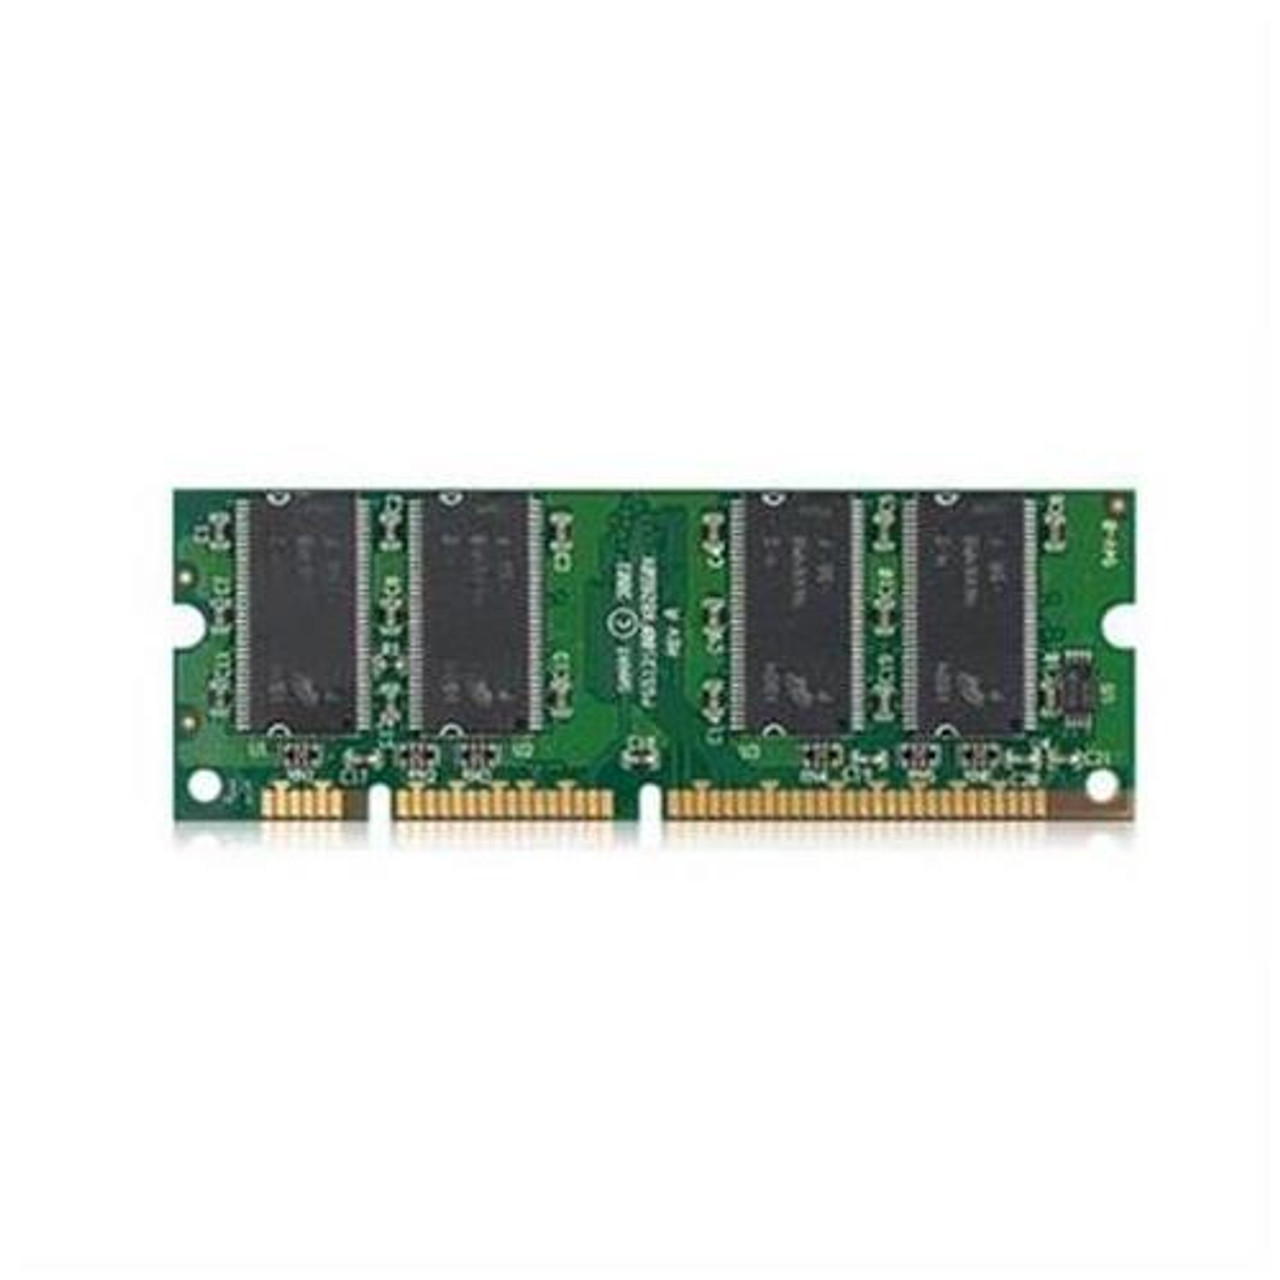 097S03380 - Xerox 128MB PC2700 DDR-333MHz non-ECC Unbuffered CL2.5 200-Pin SoDimm Memory Module For Phaser 8860MFP